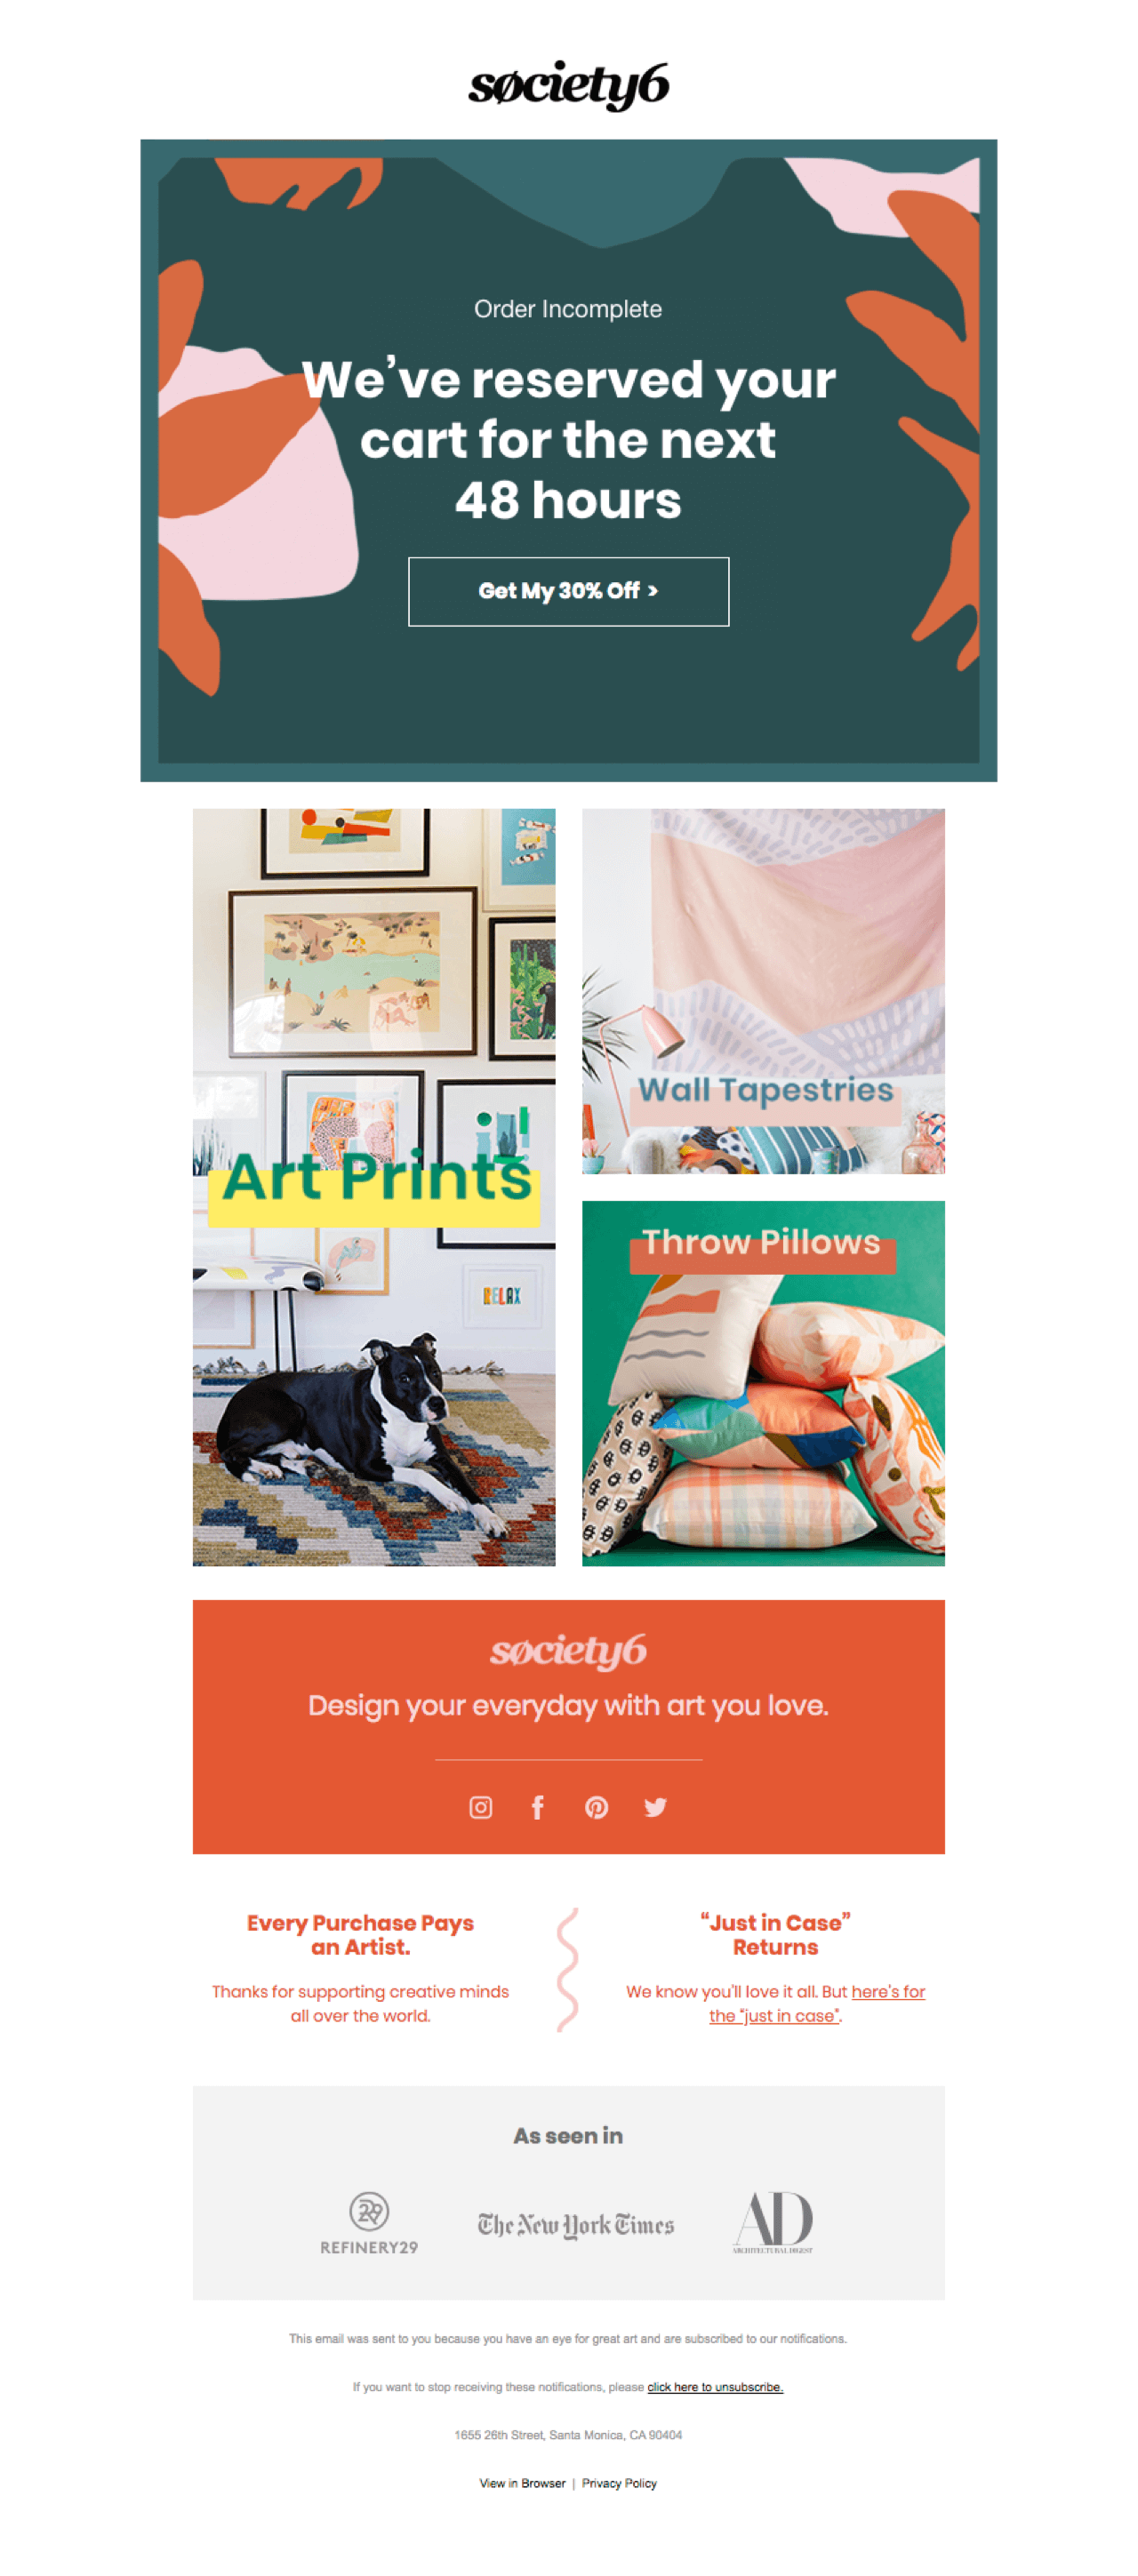 Society6 uses scarcity to increase the efficiency of their abandoned cart emails